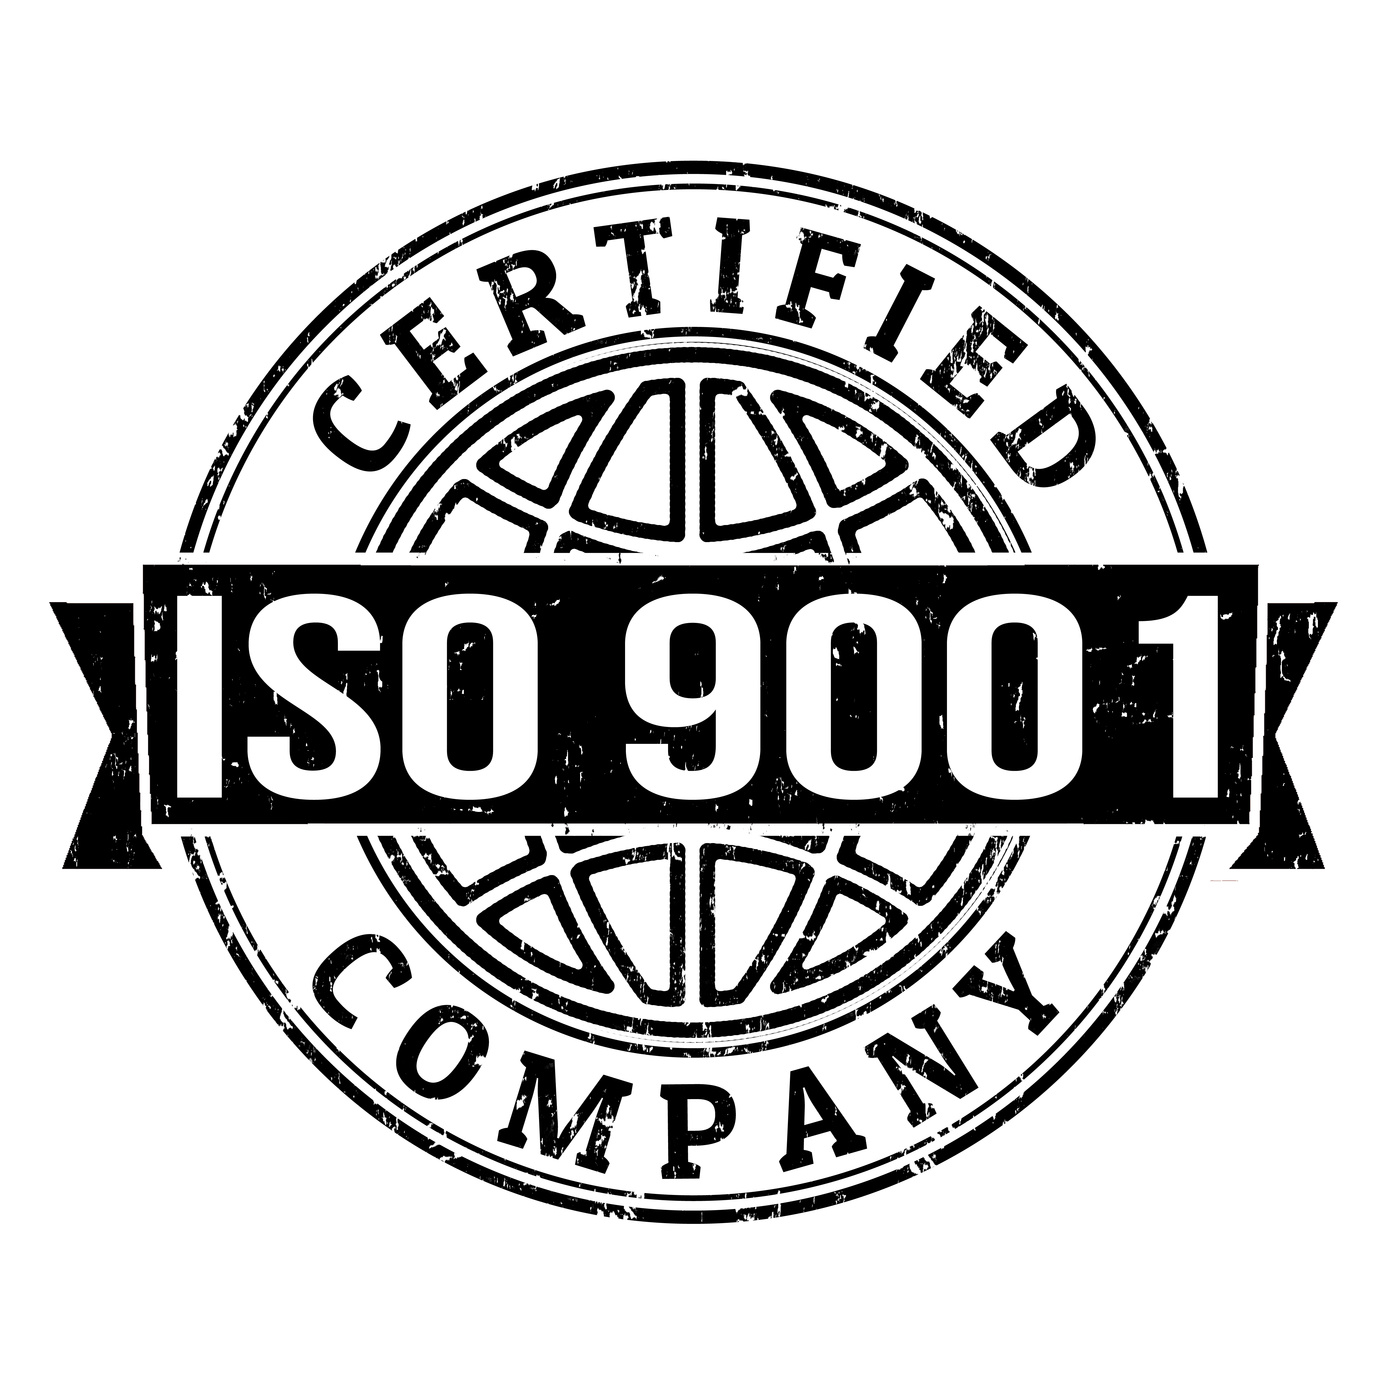 Marlin Steel Has a New ISO 9001:2015 Certificate